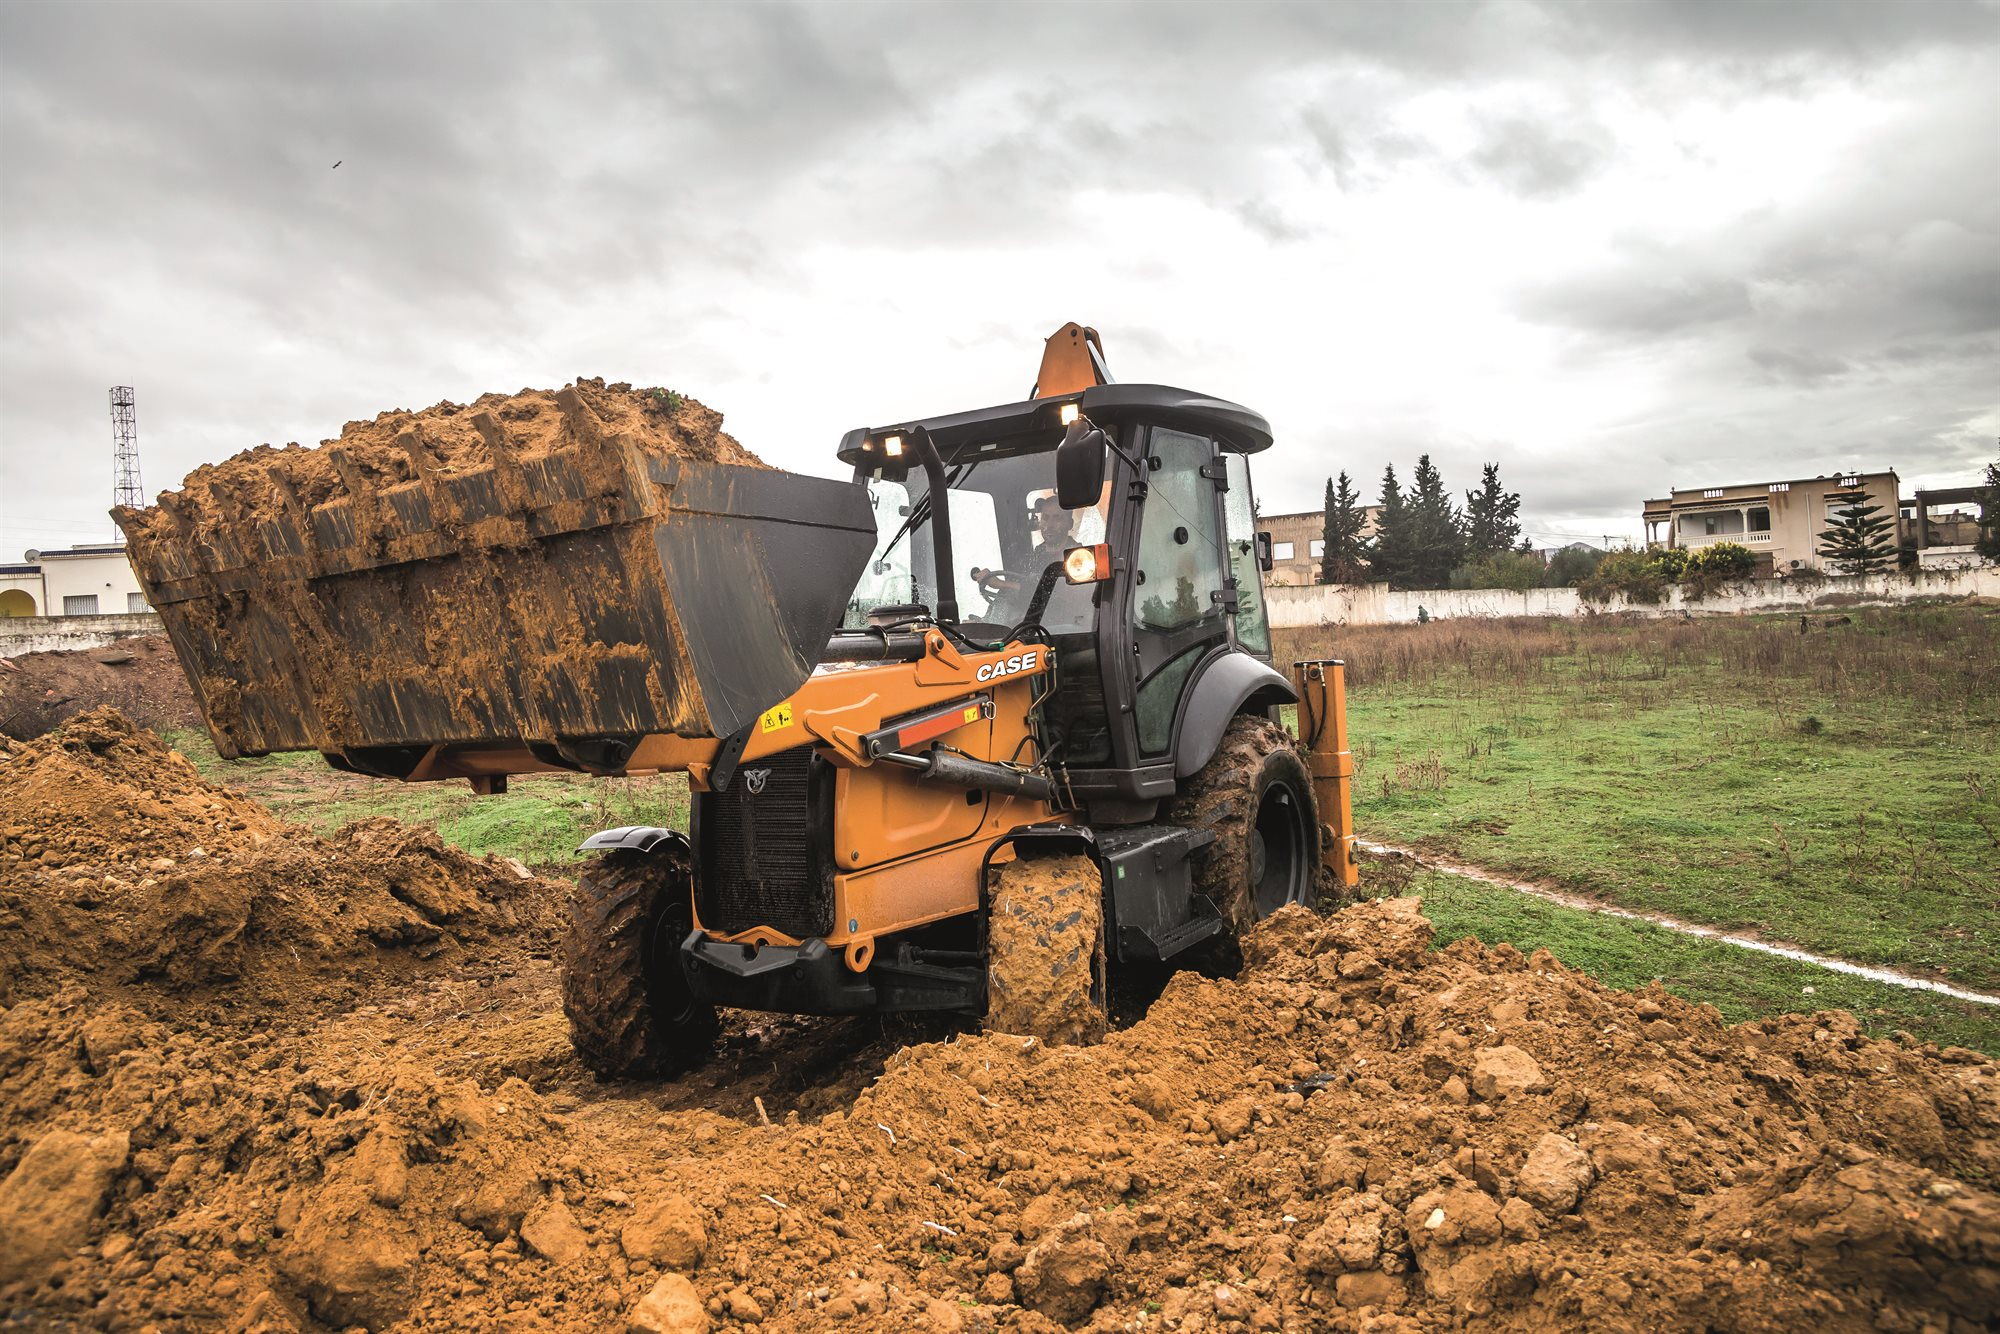 CASE 570ST backhoe loader